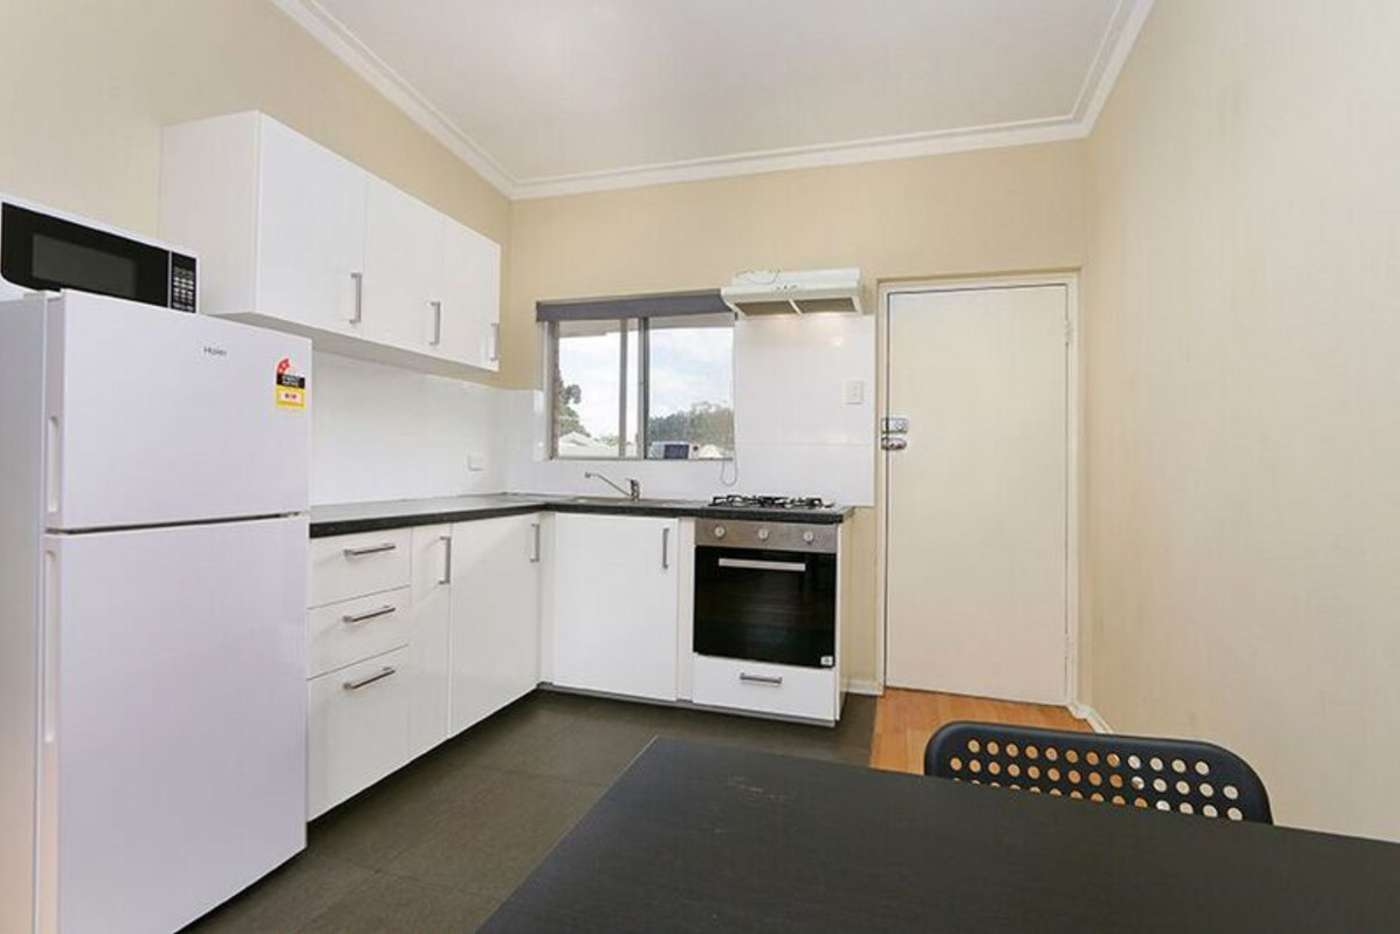 Sixth view of Homely apartment listing, 11/52 Onslow Road, Shenton Park WA 6008